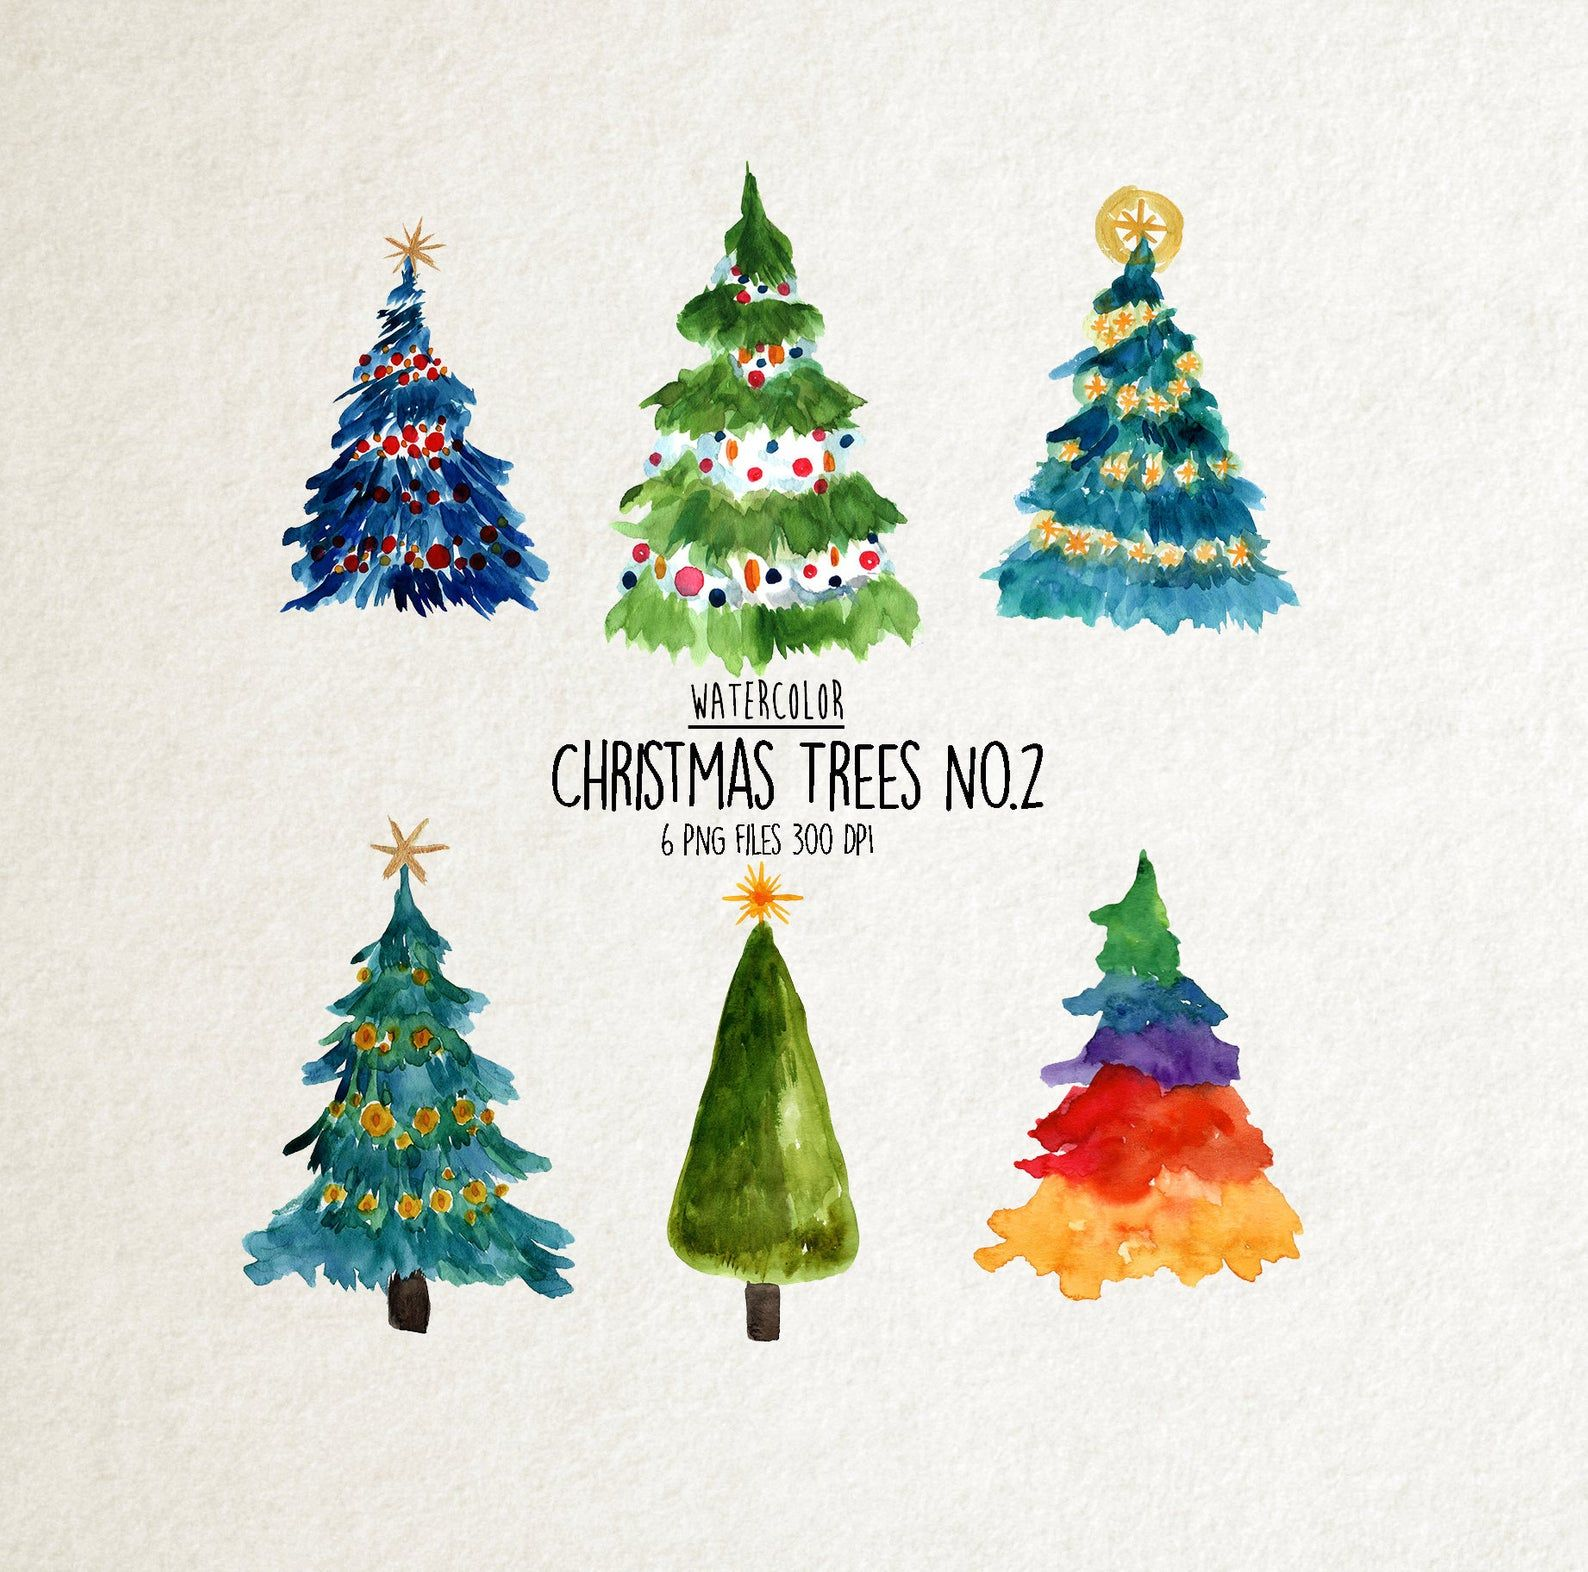 Watercolor christmas trees clipart No.2, watercolor winter clipart, pine tree clipart, christmas PNG, christmas Invitation, holiday clipart